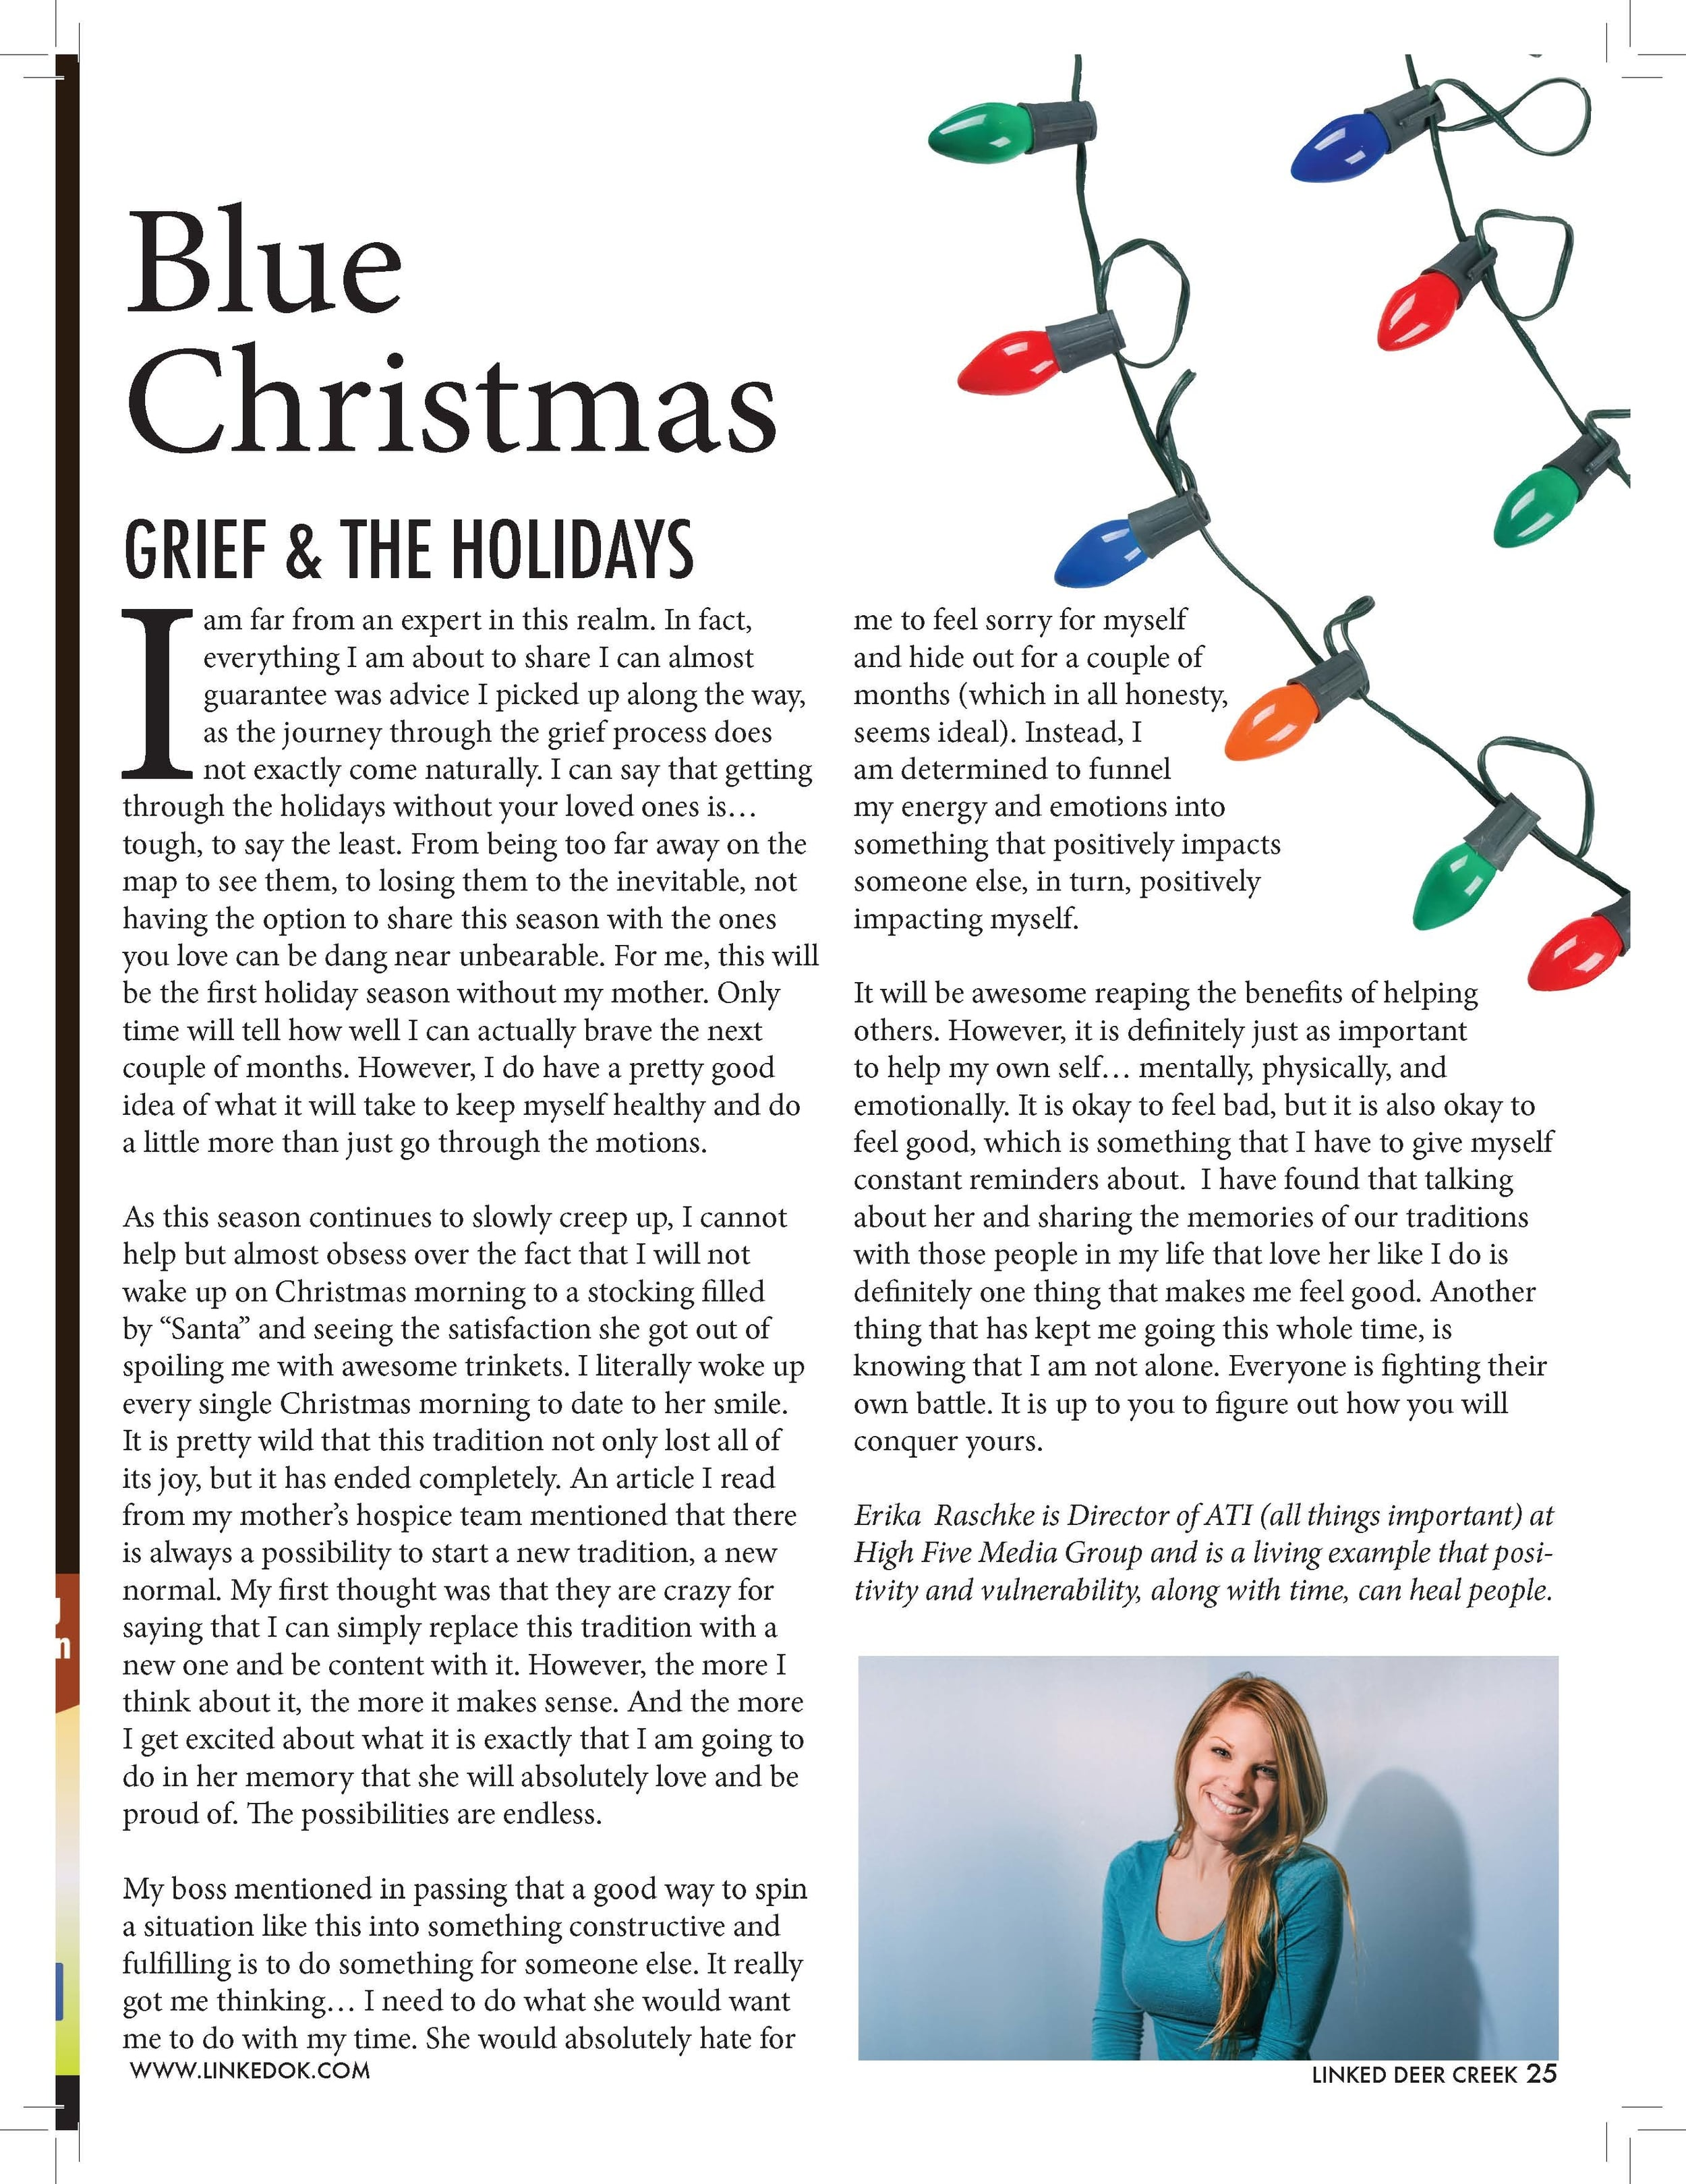 """Blue  Christmas  GRIEF & THE HOLIDAYS I am far from an expert in this realm. In fact,  everything I am about to share I can almost  guarantee was advice I picked up along the way,  as the journey through the grief process does  not exactly come naturally. I can say that getting  through the holidays without your loved ones is…  tough, to say the least. From being too far away on the  map to see them, to losing them to the inevitable, not  having the option to share this season with the ones  you love can be dang near unbearable. For me, this will  be the first holiday season without my mother. Only  time will tell how well I can actually brave the next  couple of months. However, I do have a pretty good  idea of what it will take to keep myself healthy and do  a little more than just go through the motions.  As this season continues to slowly creep up, I cannot  help but almost obsess over the fact that I will not  wake up on Christmas morning to a stocking filled  by """"Santa"""" and seeing the satisfaction she got out of  spoiling me with awesome trinkets. I literally woke up  every single Christmas morning to date to her smile.  It is pretty wild that this tradition not only lost all of  its joy, but it has ended completely. An article I read  from my mother's hospice team mentioned that there  is always a possibility to start a new tradition, a new  normal. My first thought was that they are crazy for  saying that I can simply replace this tradition with a  new one and be content with it. However, the more I  think about it, the more it makes sense. And the more  I get excited about what it is exactly that I am going to  do in her memory that she will absolutely love and be  proud of. The possibilities are endless.  My boss mentioned in passing that a good way to spin  a situation like this into something constructive and  fulfilling is to do something for someone else. It really  got me thinking… I need to do what she would want  me to do with my time. She would abs"""